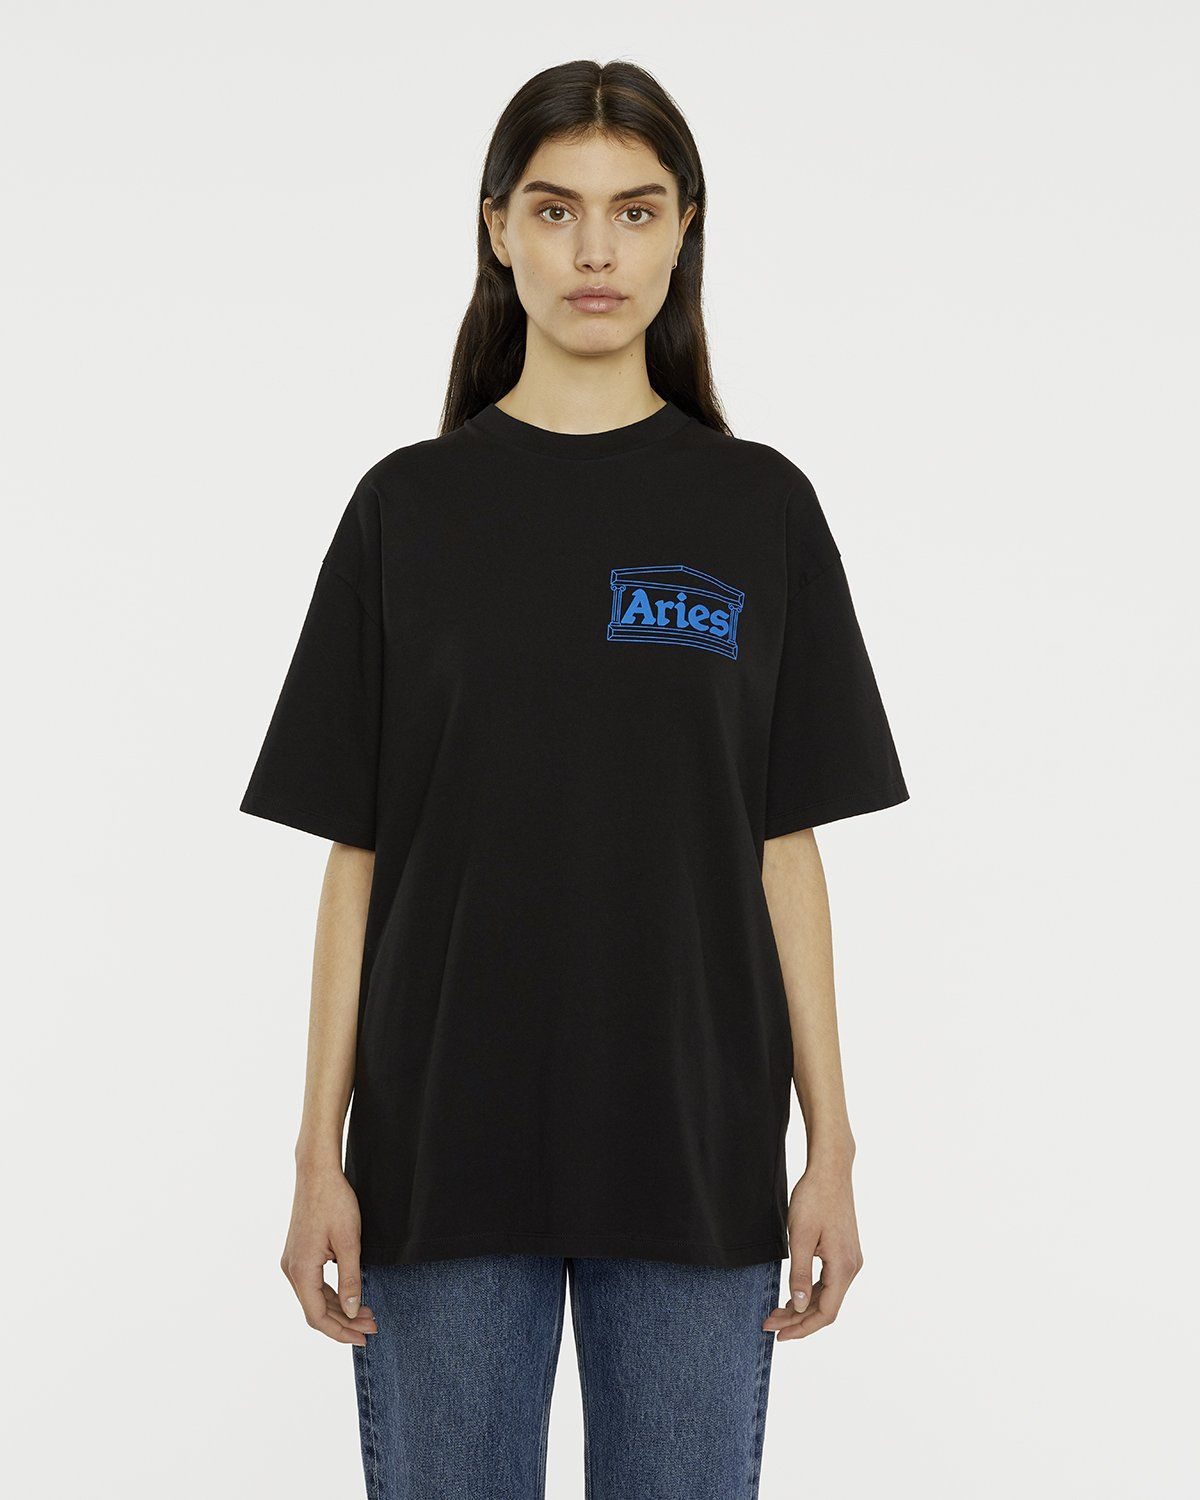 Aries - Temple Tee Black - Image 4